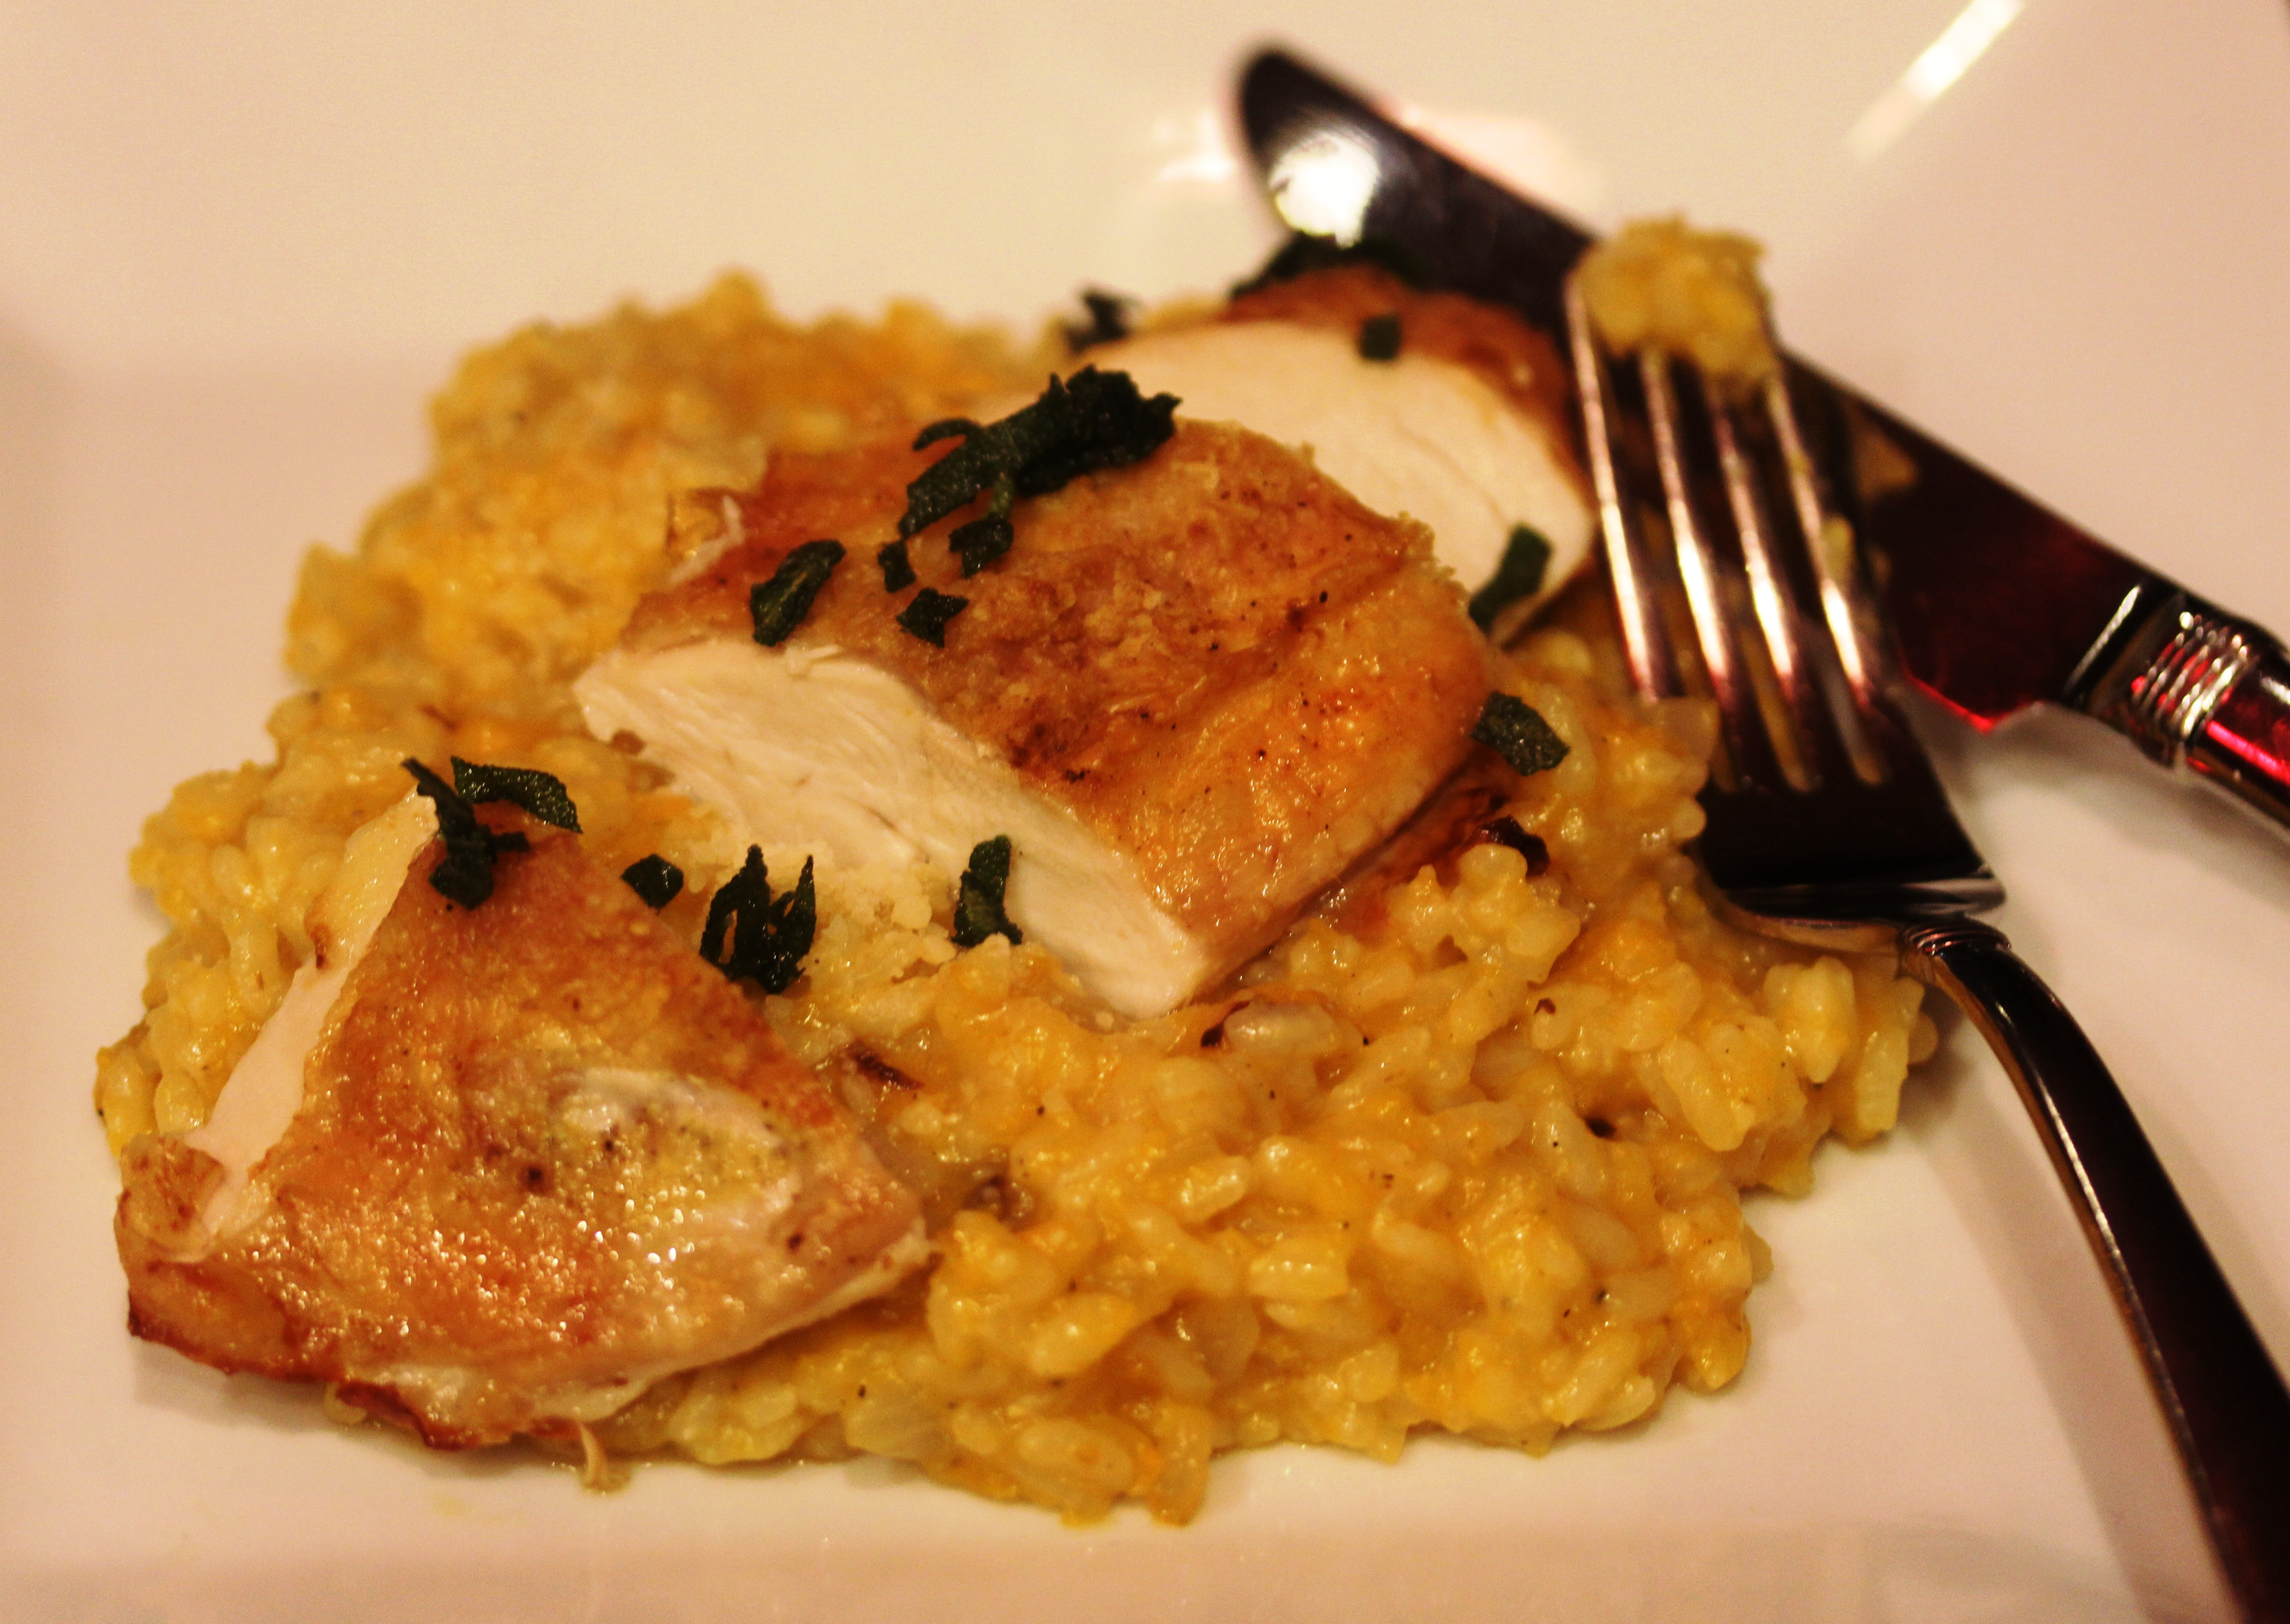 ... roasted butternut squash so of course i love butternut squash risotto